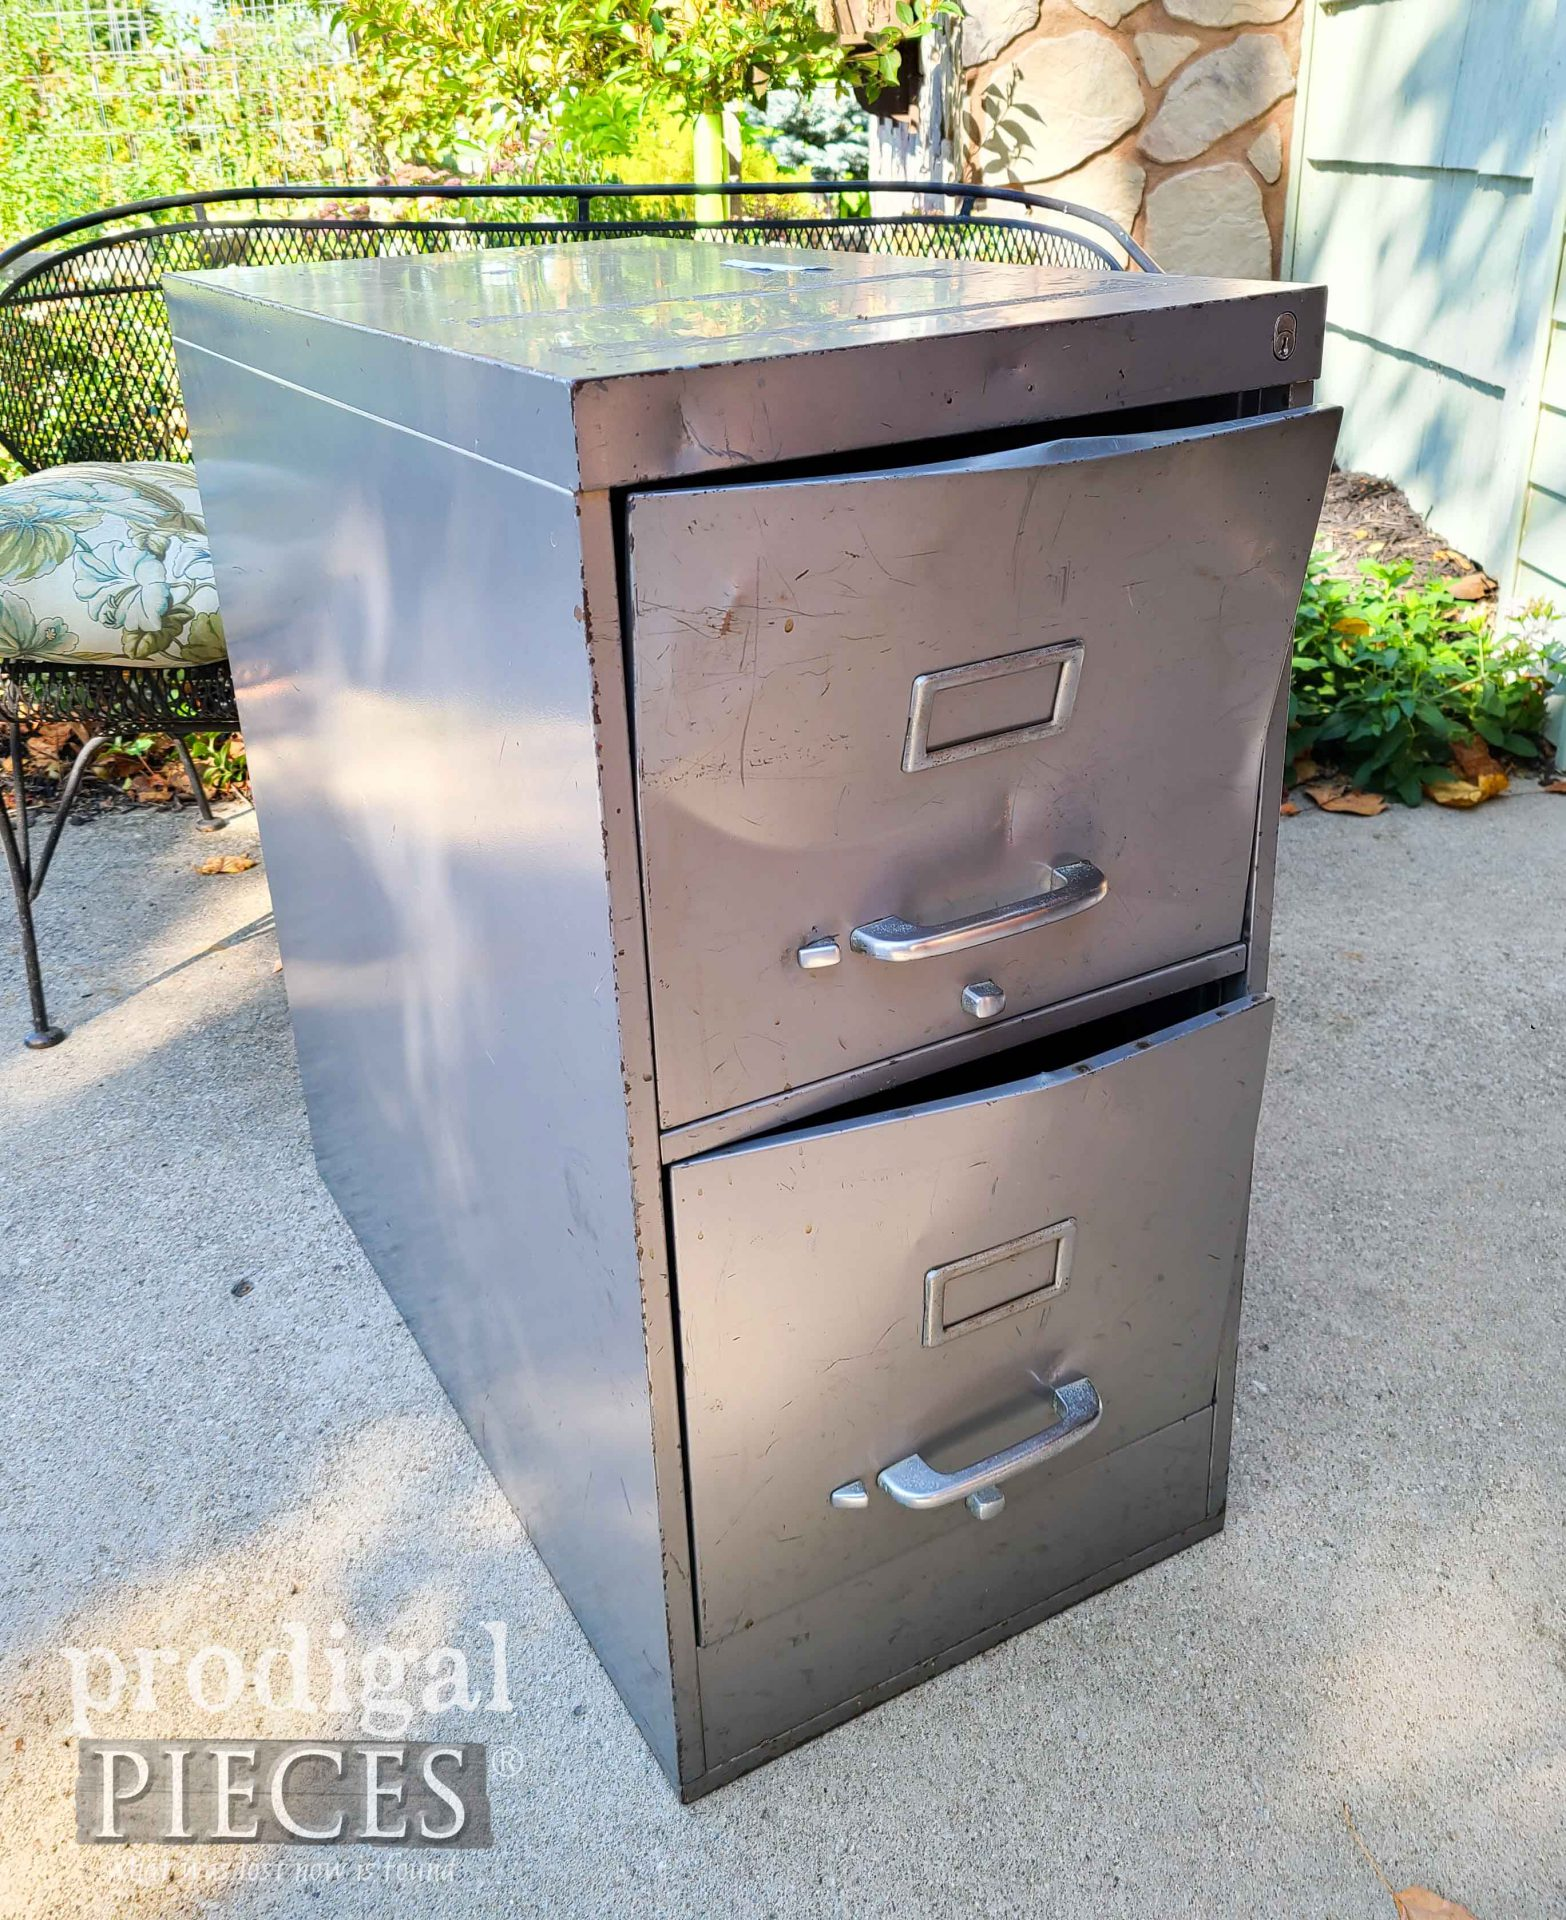 Vintage Industrial Filing Cabinet Before Upcycle by Larissa of Prodigal Pieces   prodigalpieces.com